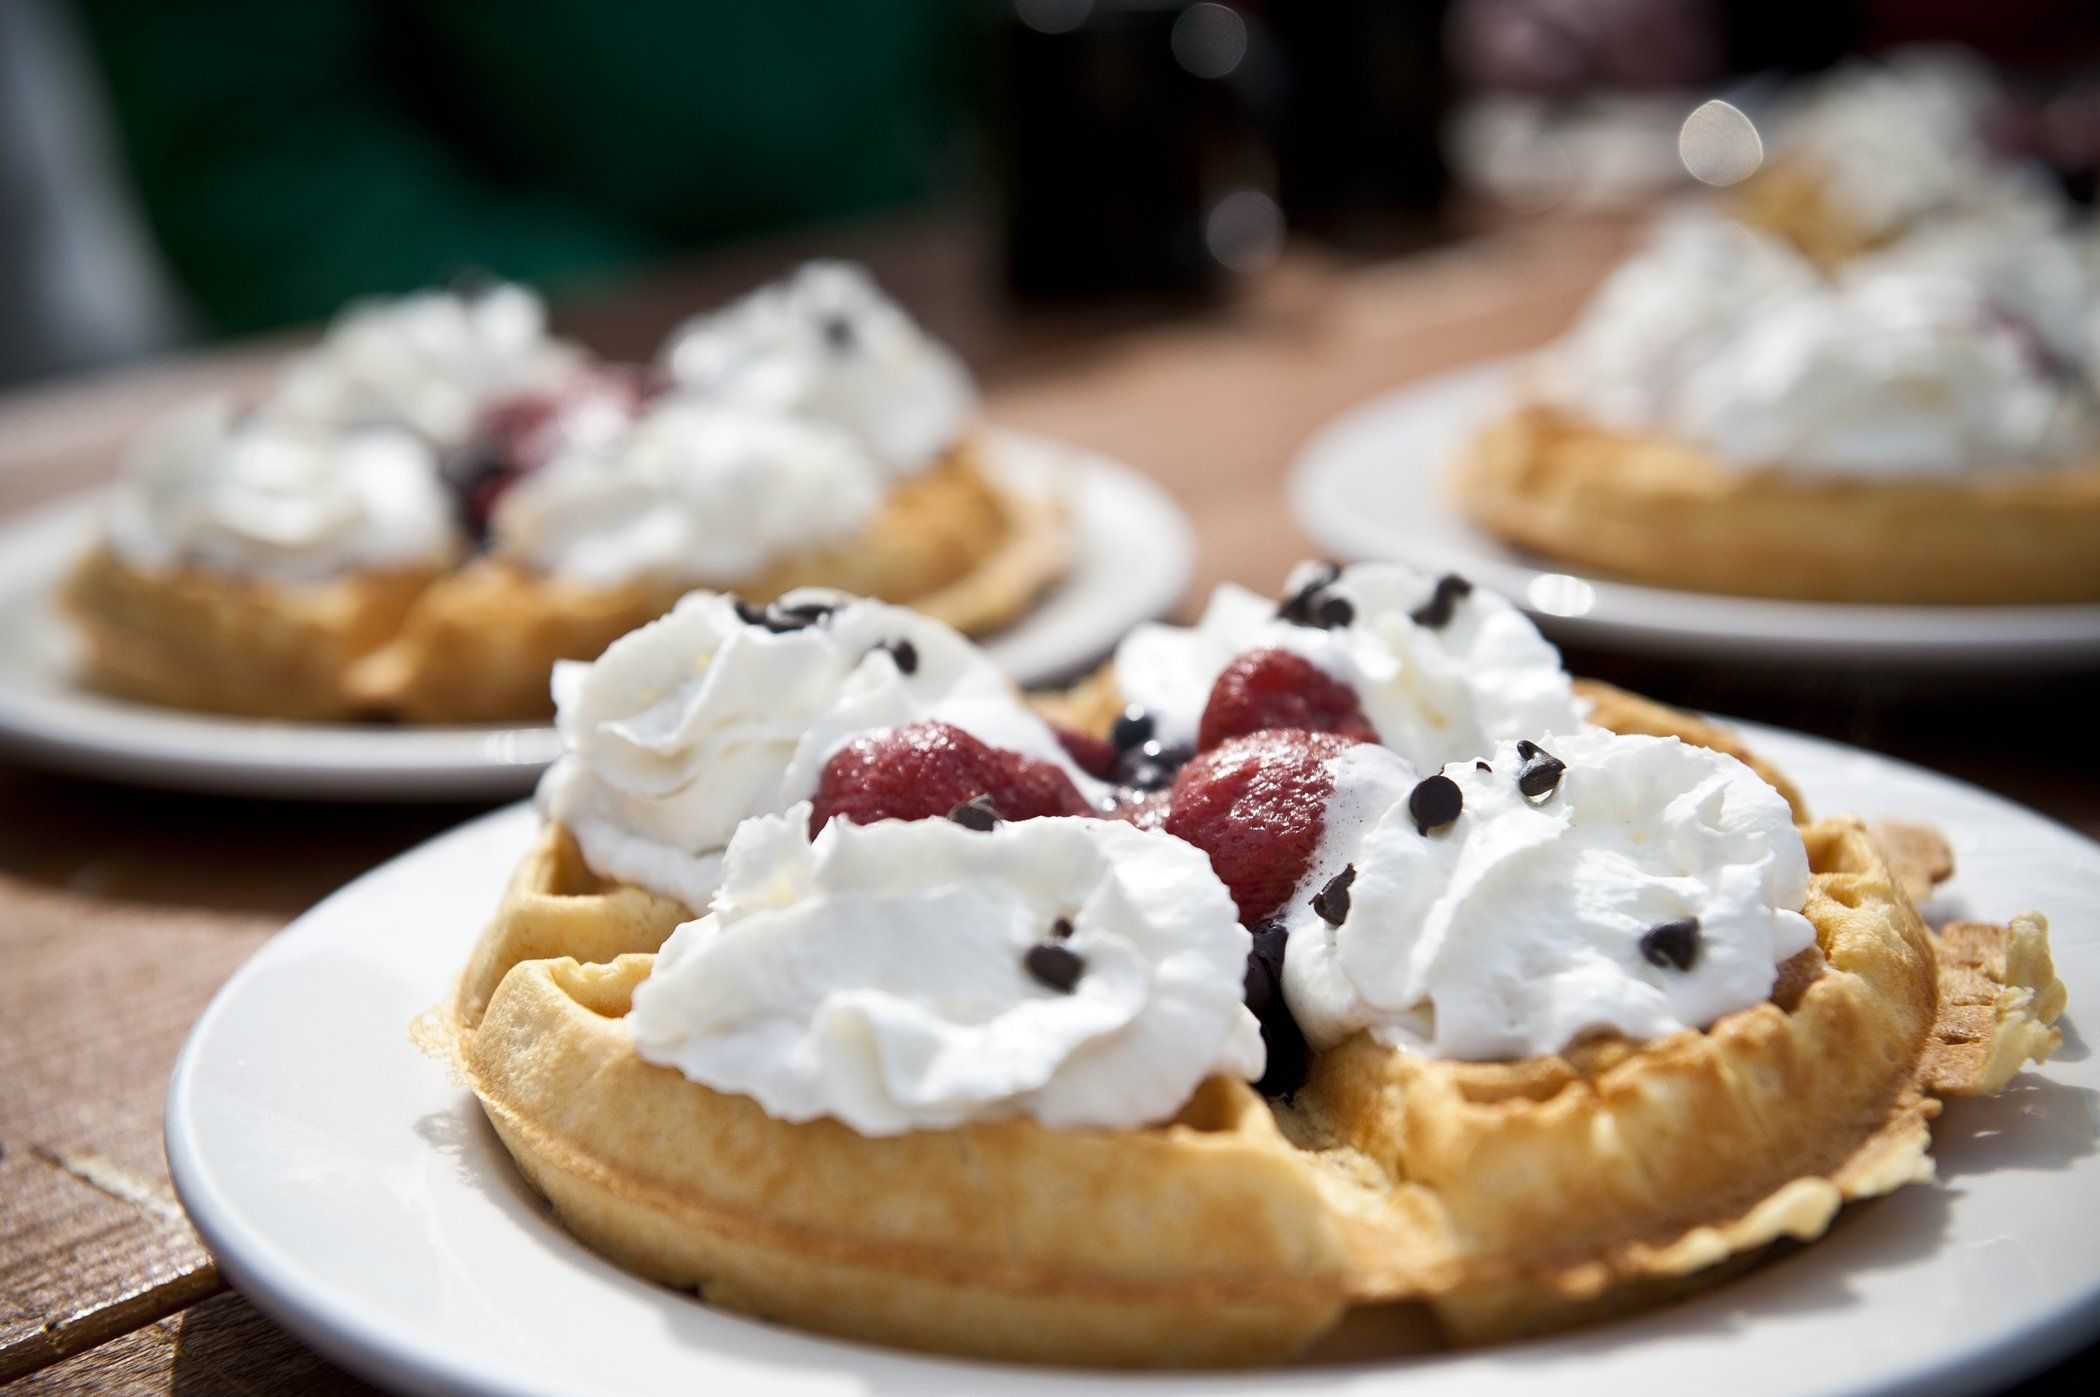 Enjoy the fresh, delicious and fully-loaded waffles at the Crystal Hut on Blackcomb Mountain.  Photo by: Brooke McDonald.